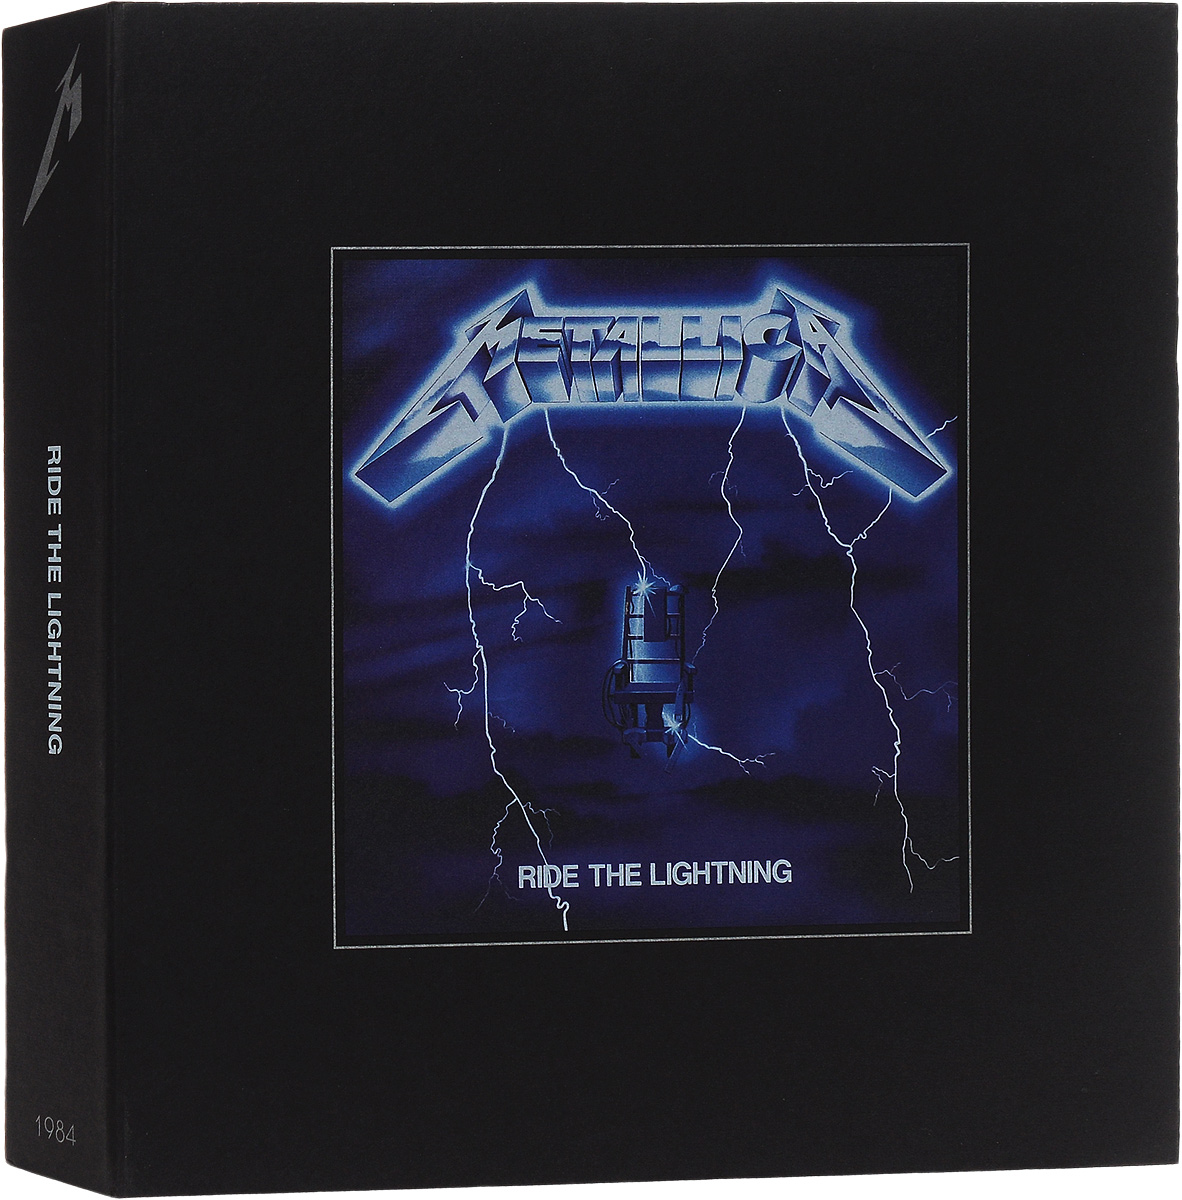 Metallica Metallica. Ride The Lightning (3 LP + 6 CD + DVD) футболка с полной запечаткой printio spaces